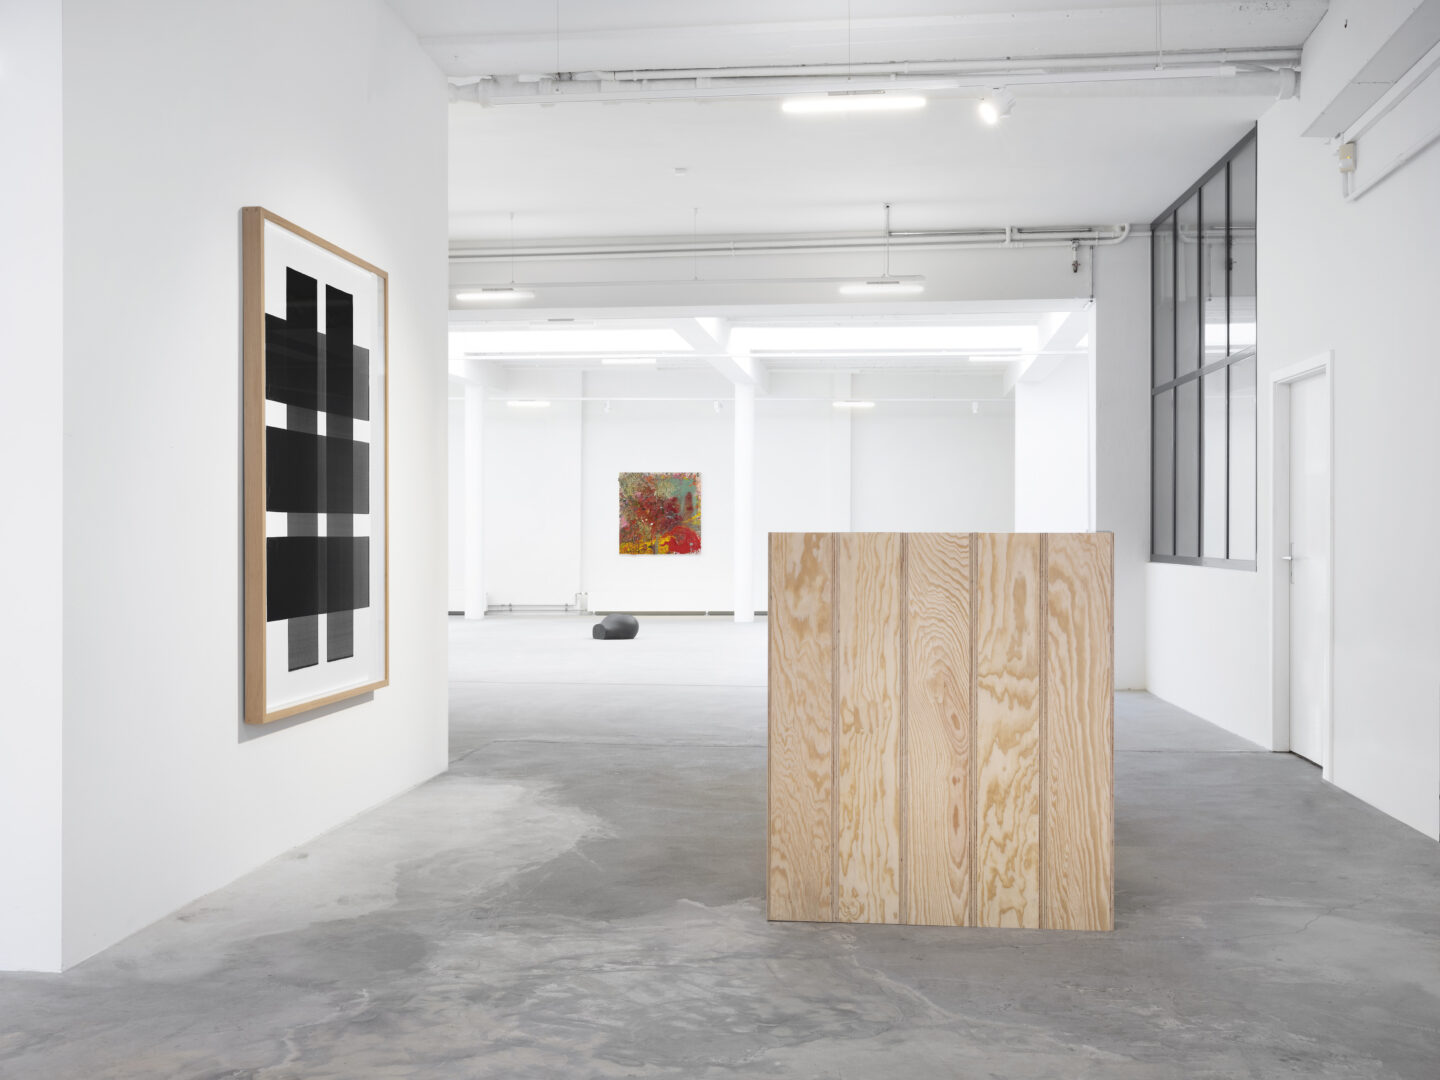 Exhibition View Groupshow «Swiss Made; view on Fabrice Gigi, Untitled, 2018 and Les Euxidies - Version I, II, III, 2019; John Armleder, Gravikords, 2019 and Yarisal & Kublitz, Booty, 2016» at Ribordy Thetaz, Geneva, 2019 / Photo: © Julien Gremaud